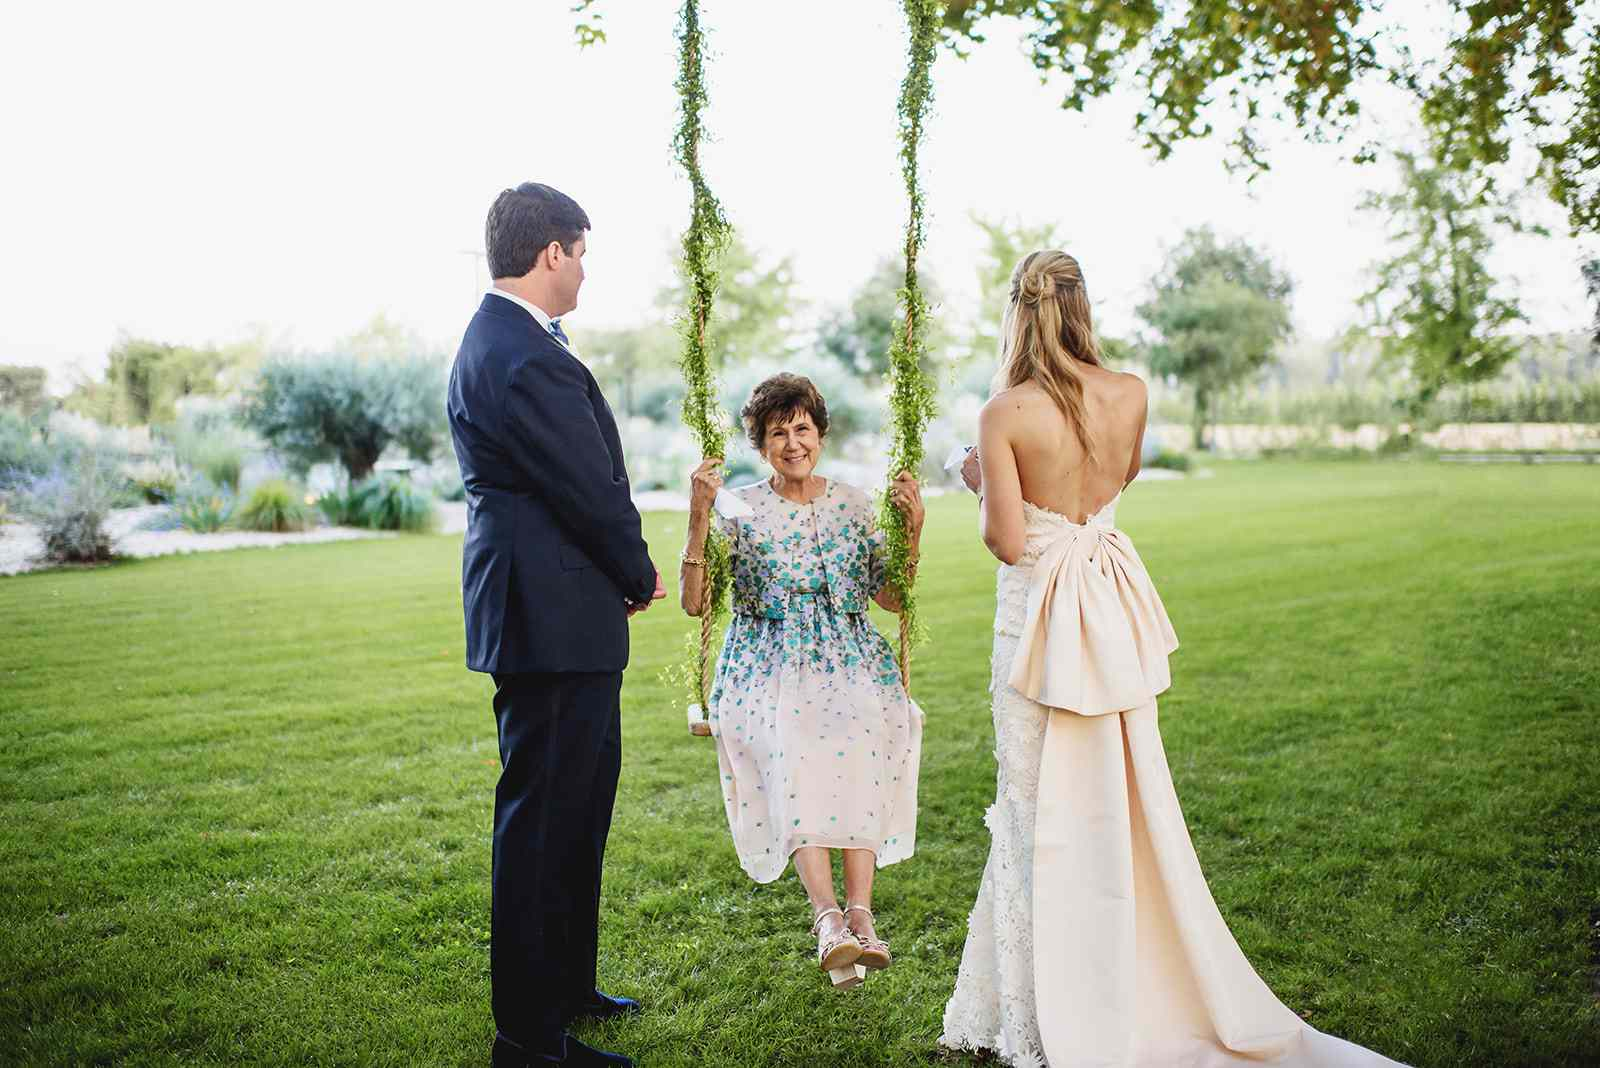 Bride and groom with mom on swing